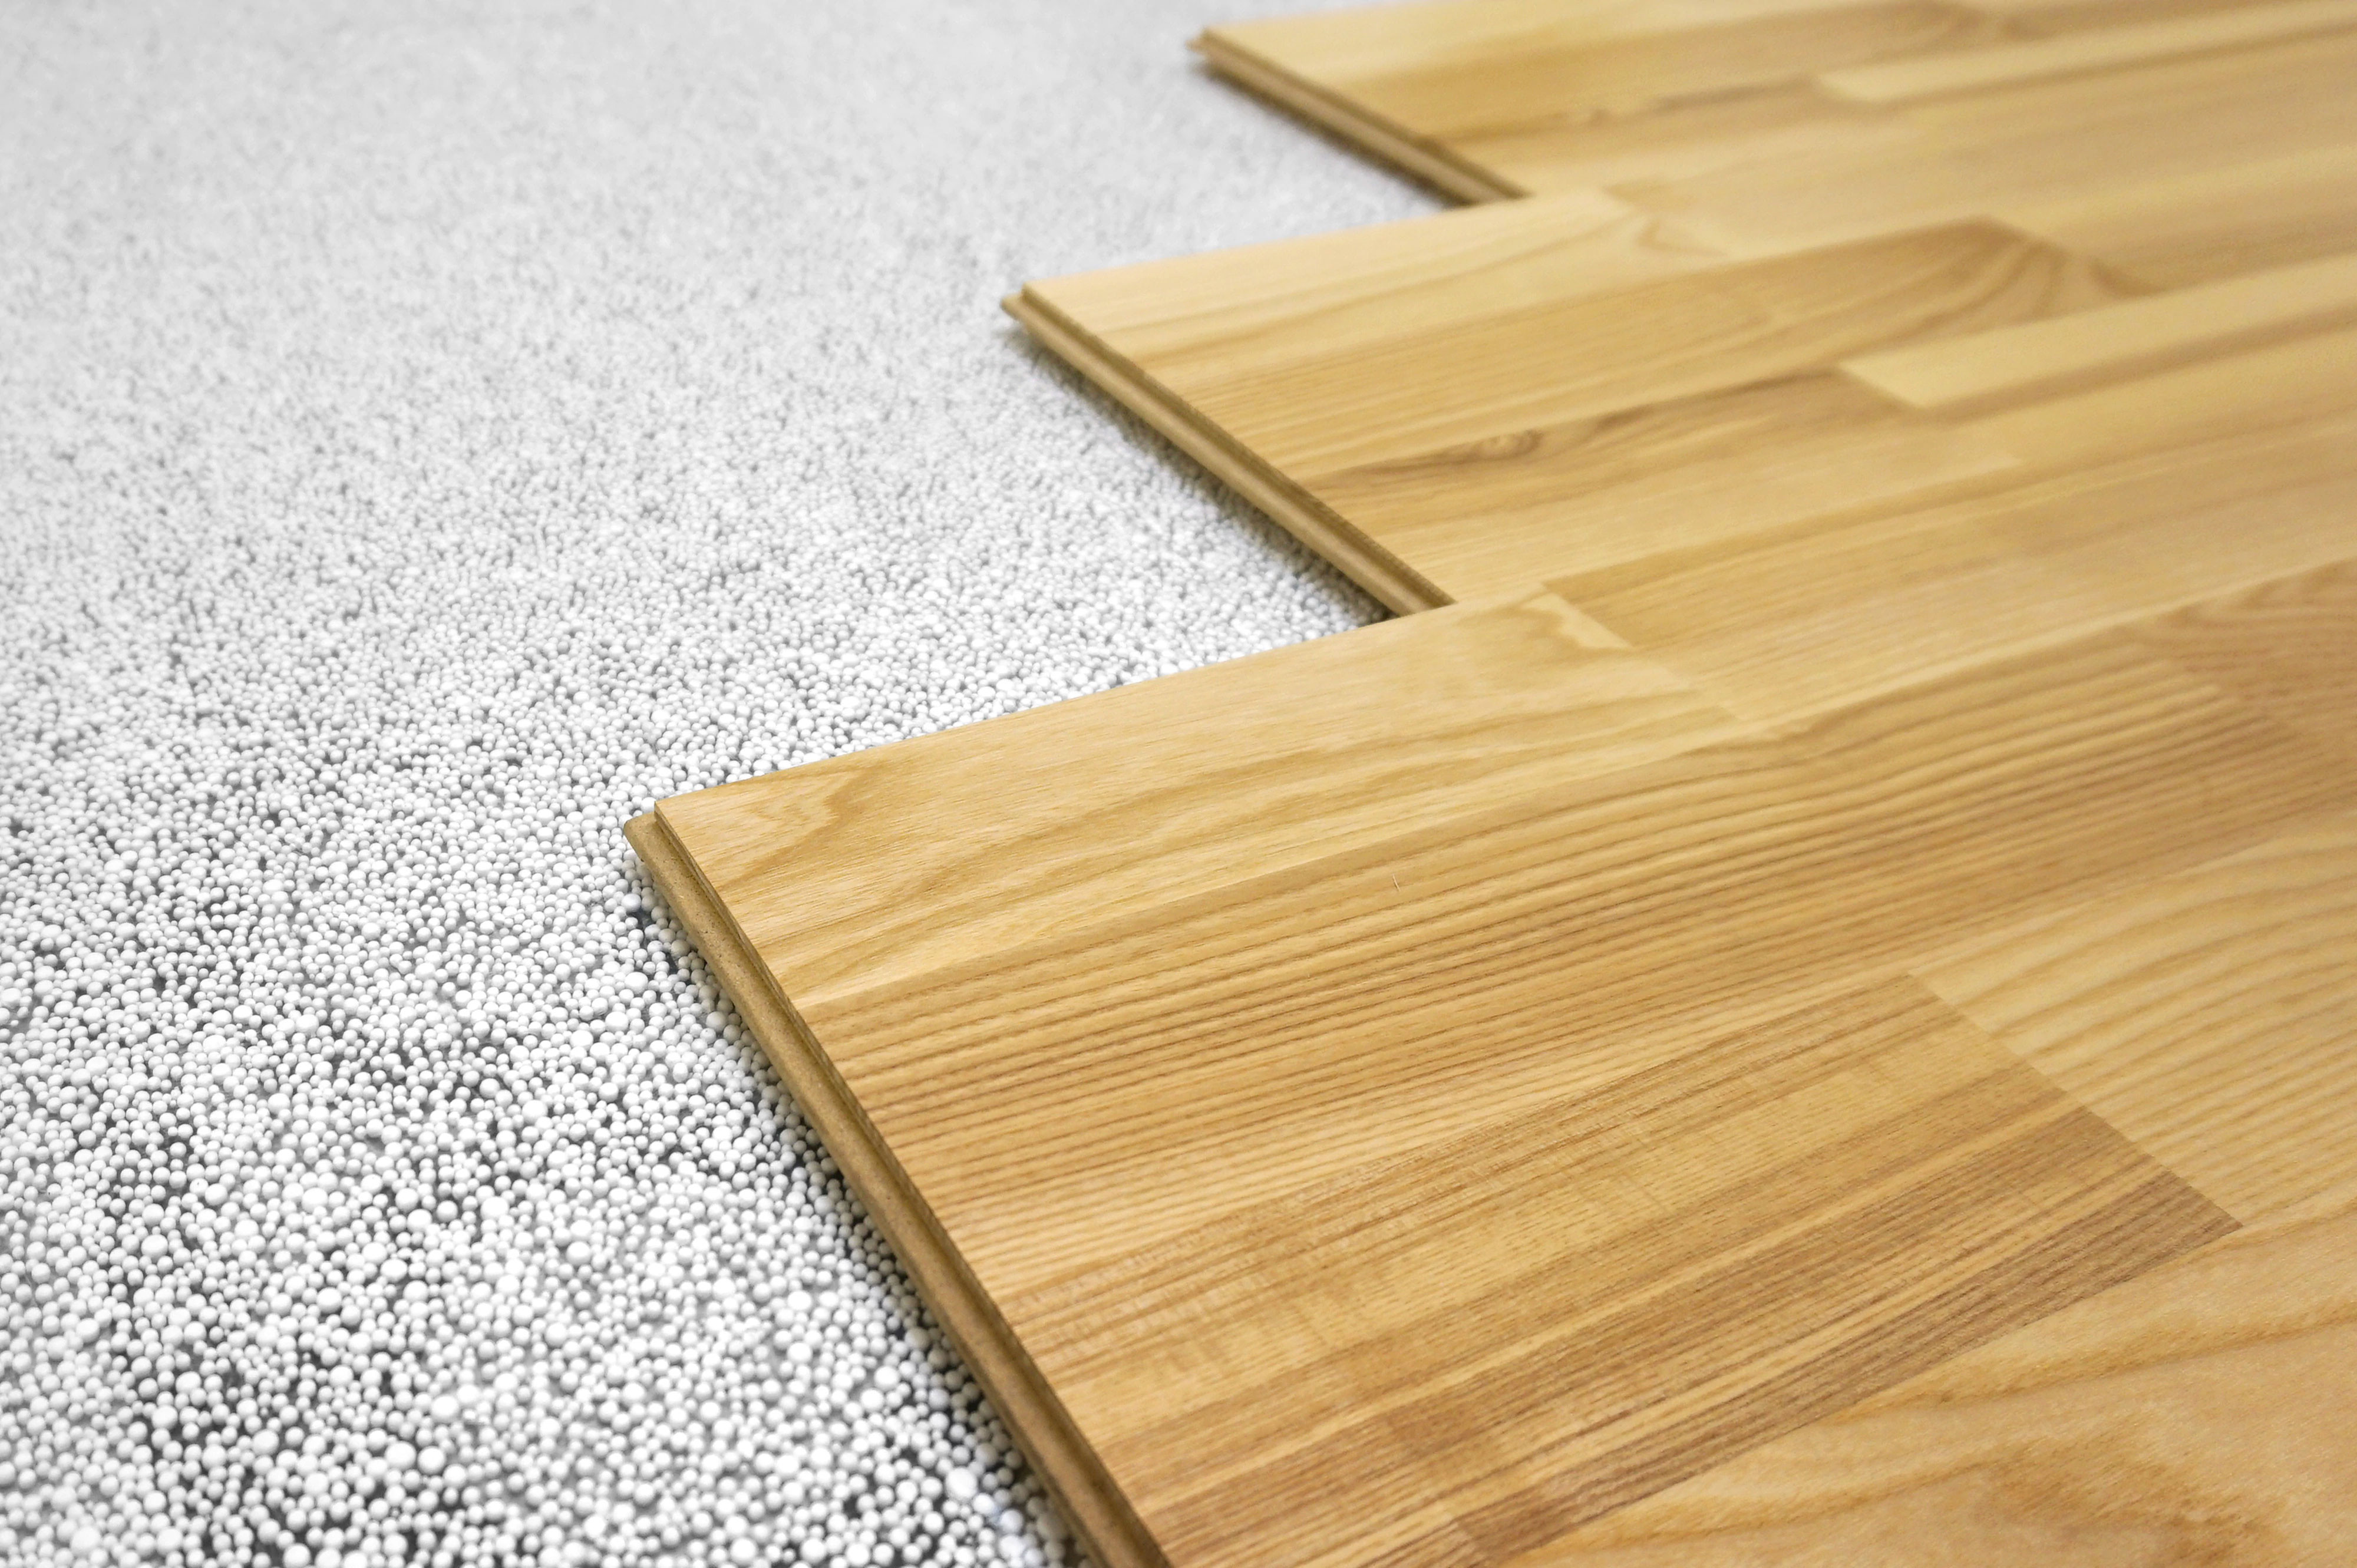 cheap hardwood flooring raleigh nc of what does it cost to install laminate flooring angies list within wood lam